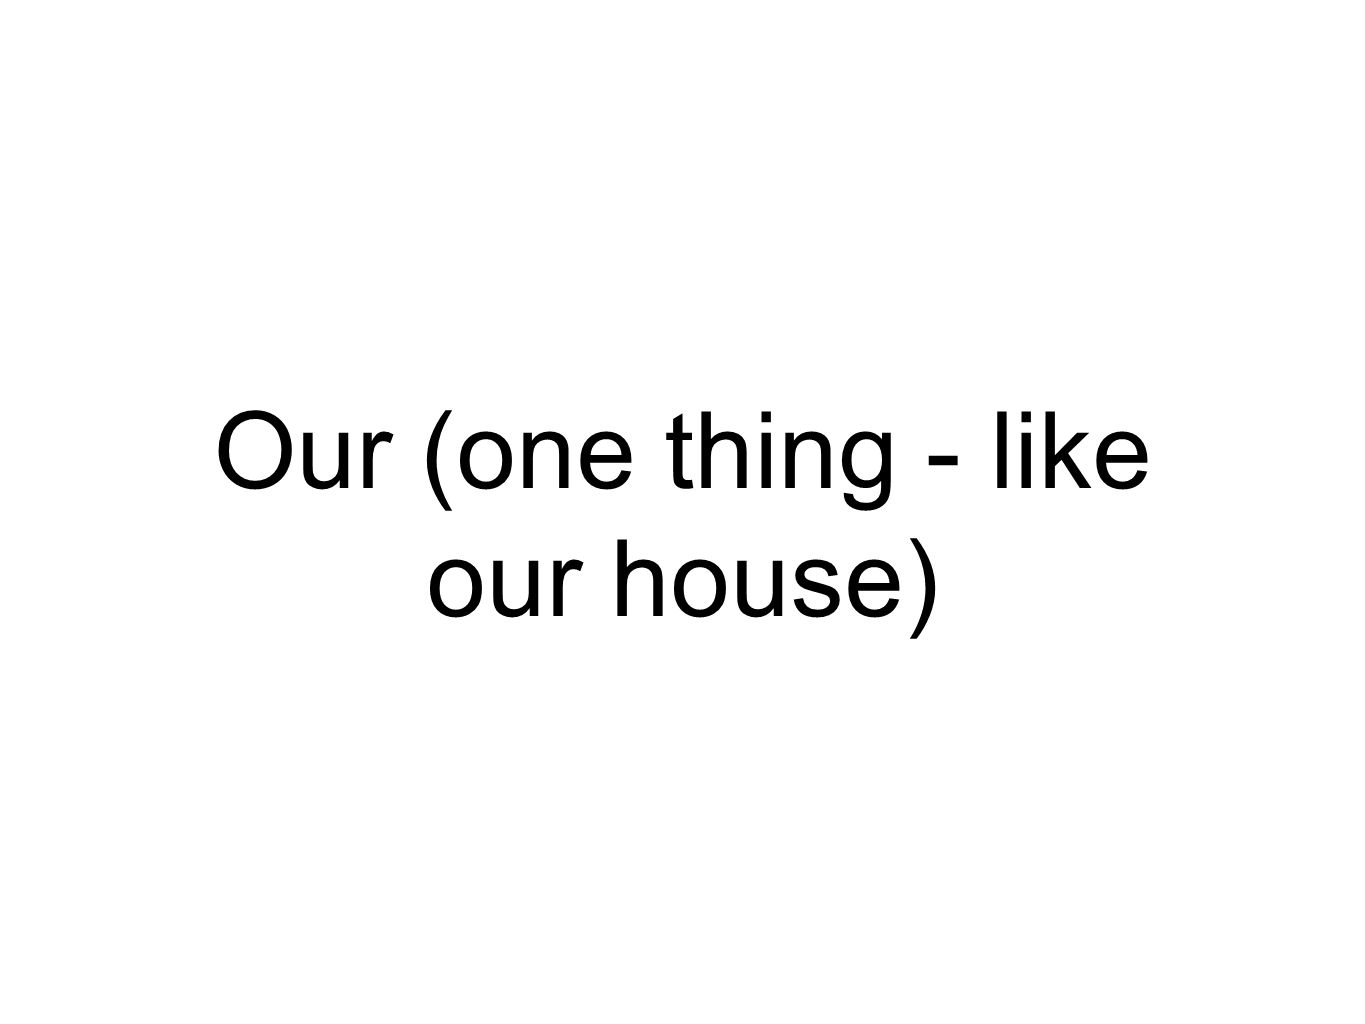 Our (one thing - like our house)